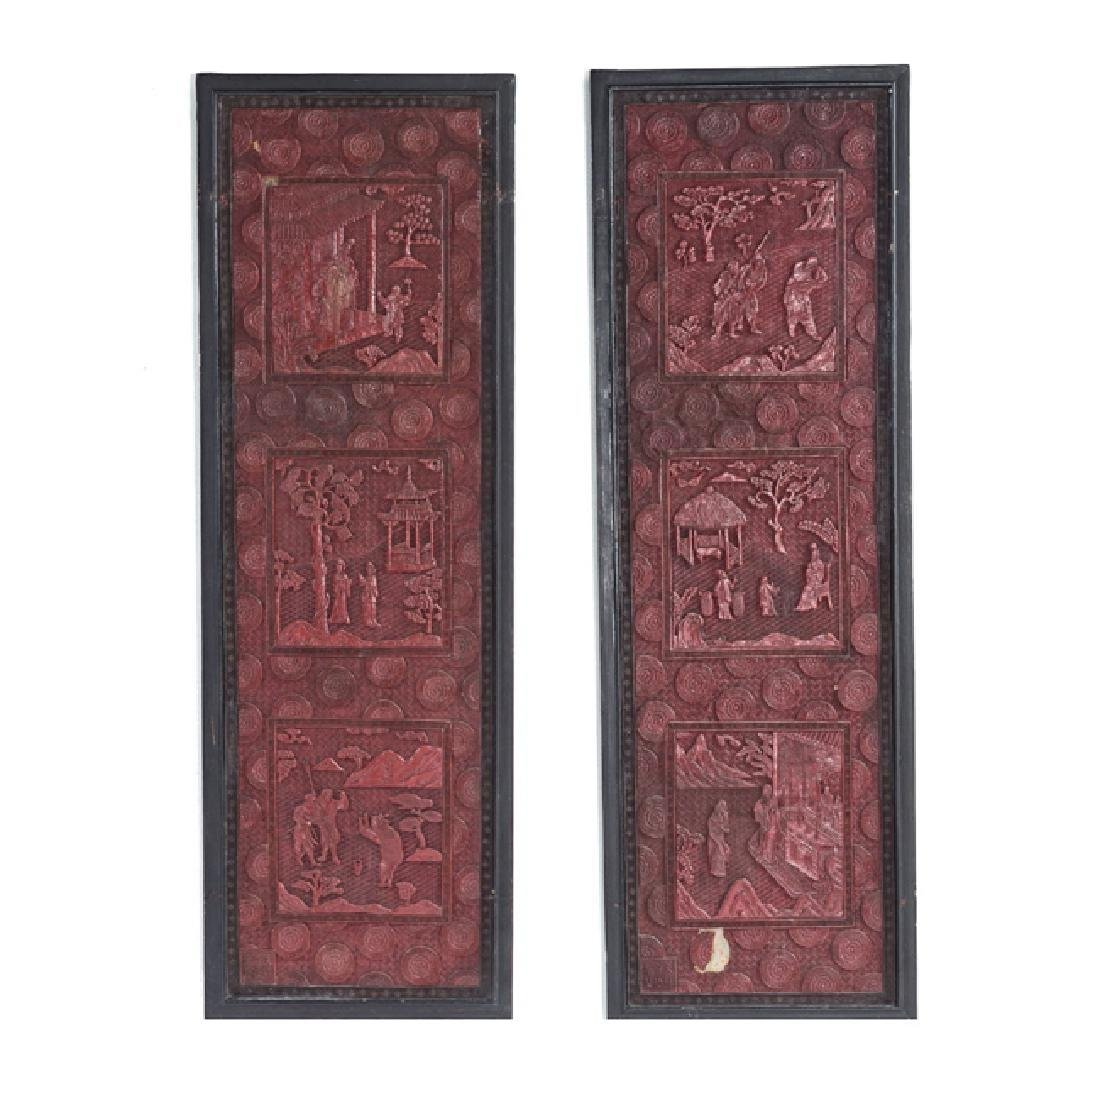 Chinese cinnabar lacquer panels